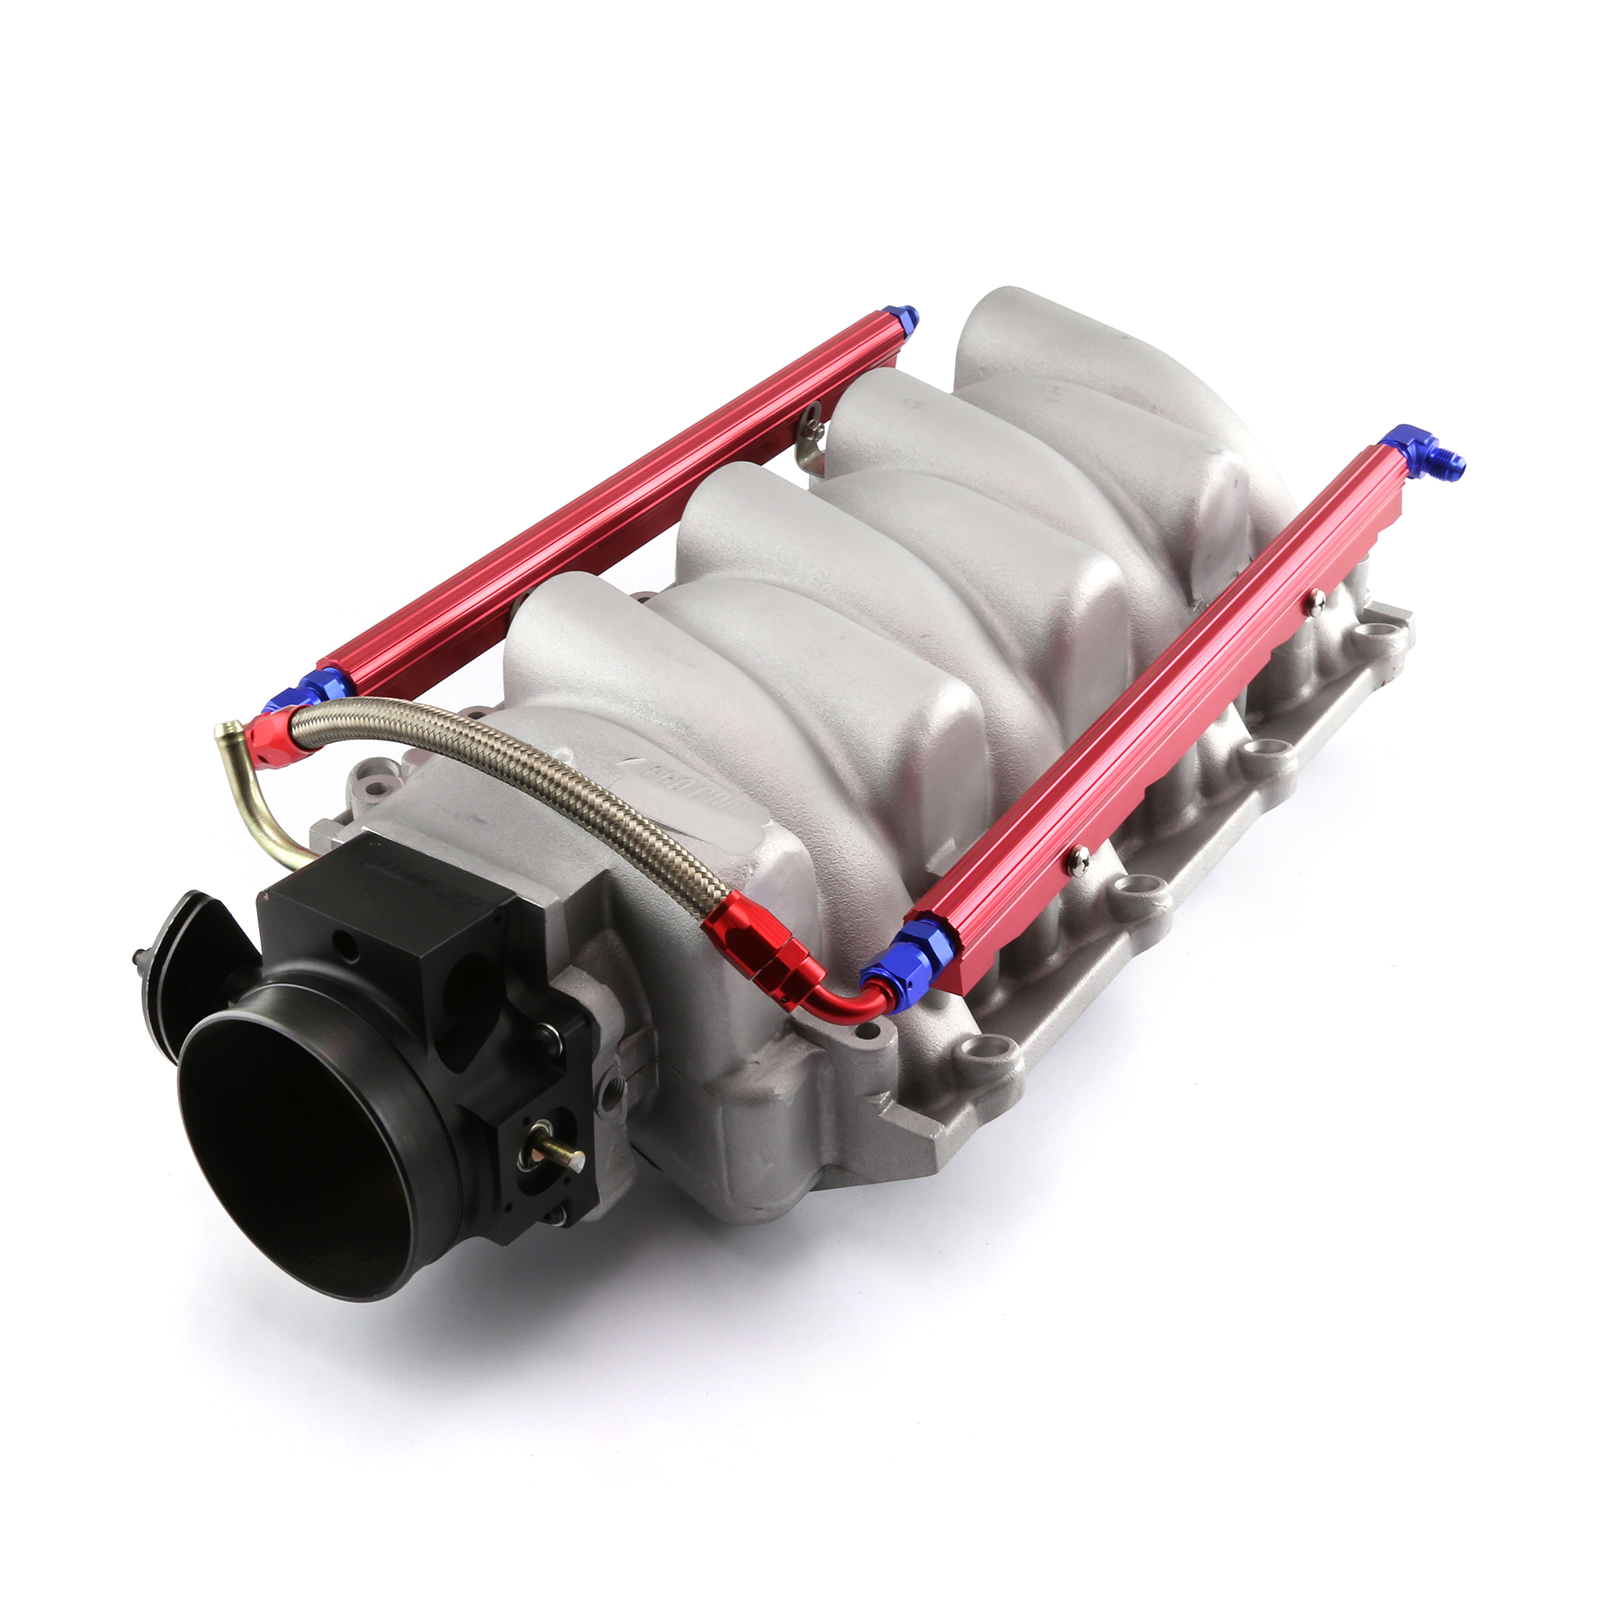 Chevy LS2 Satin Aluminum Intake Manifold with 90mm Throttle Body